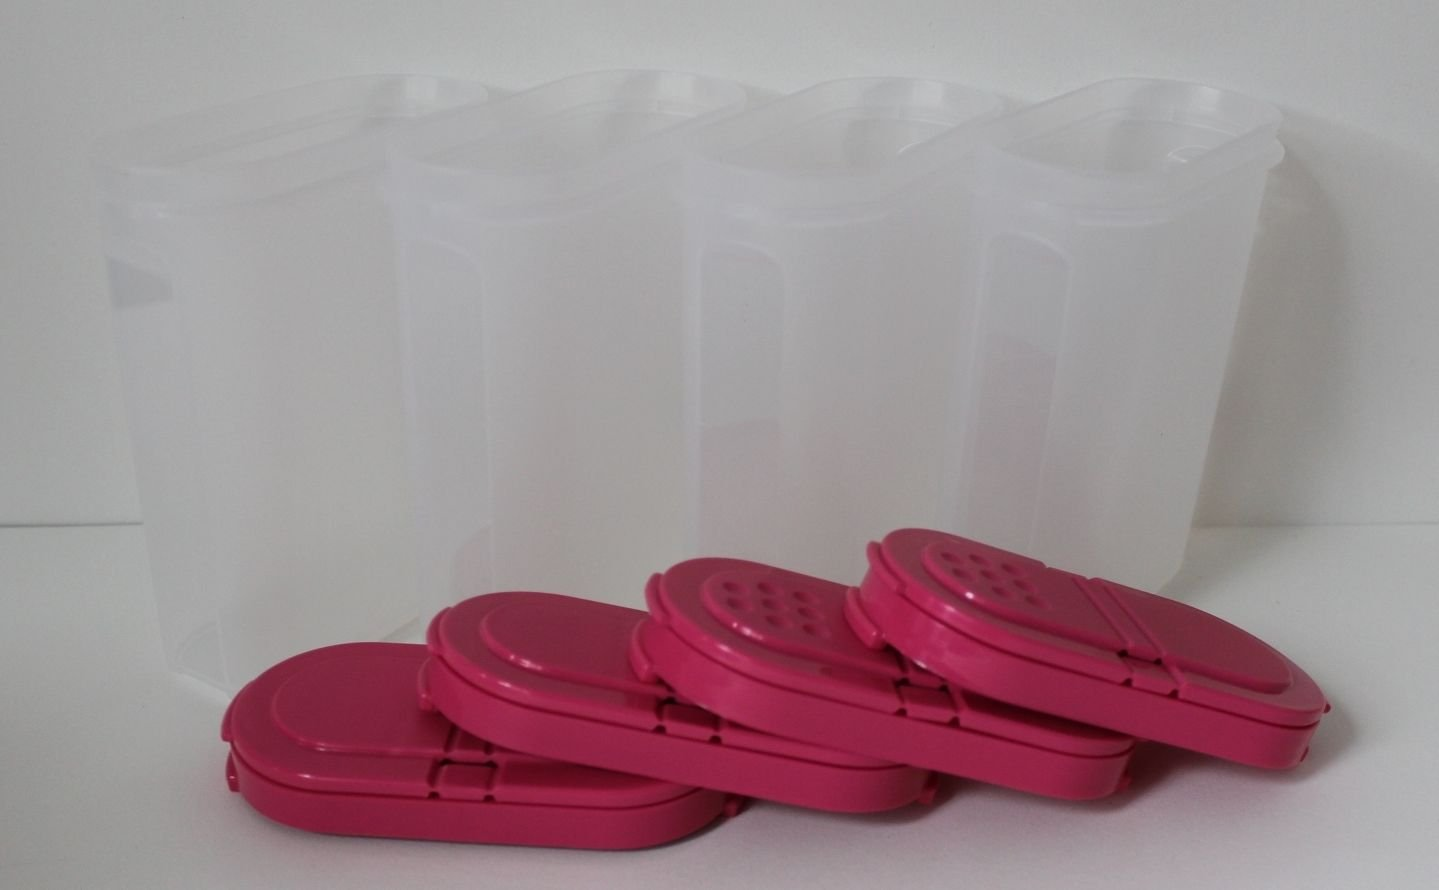 Tupperware Large Spice Shaker Conatiner Set of 4 Pink Punch by Tupperware